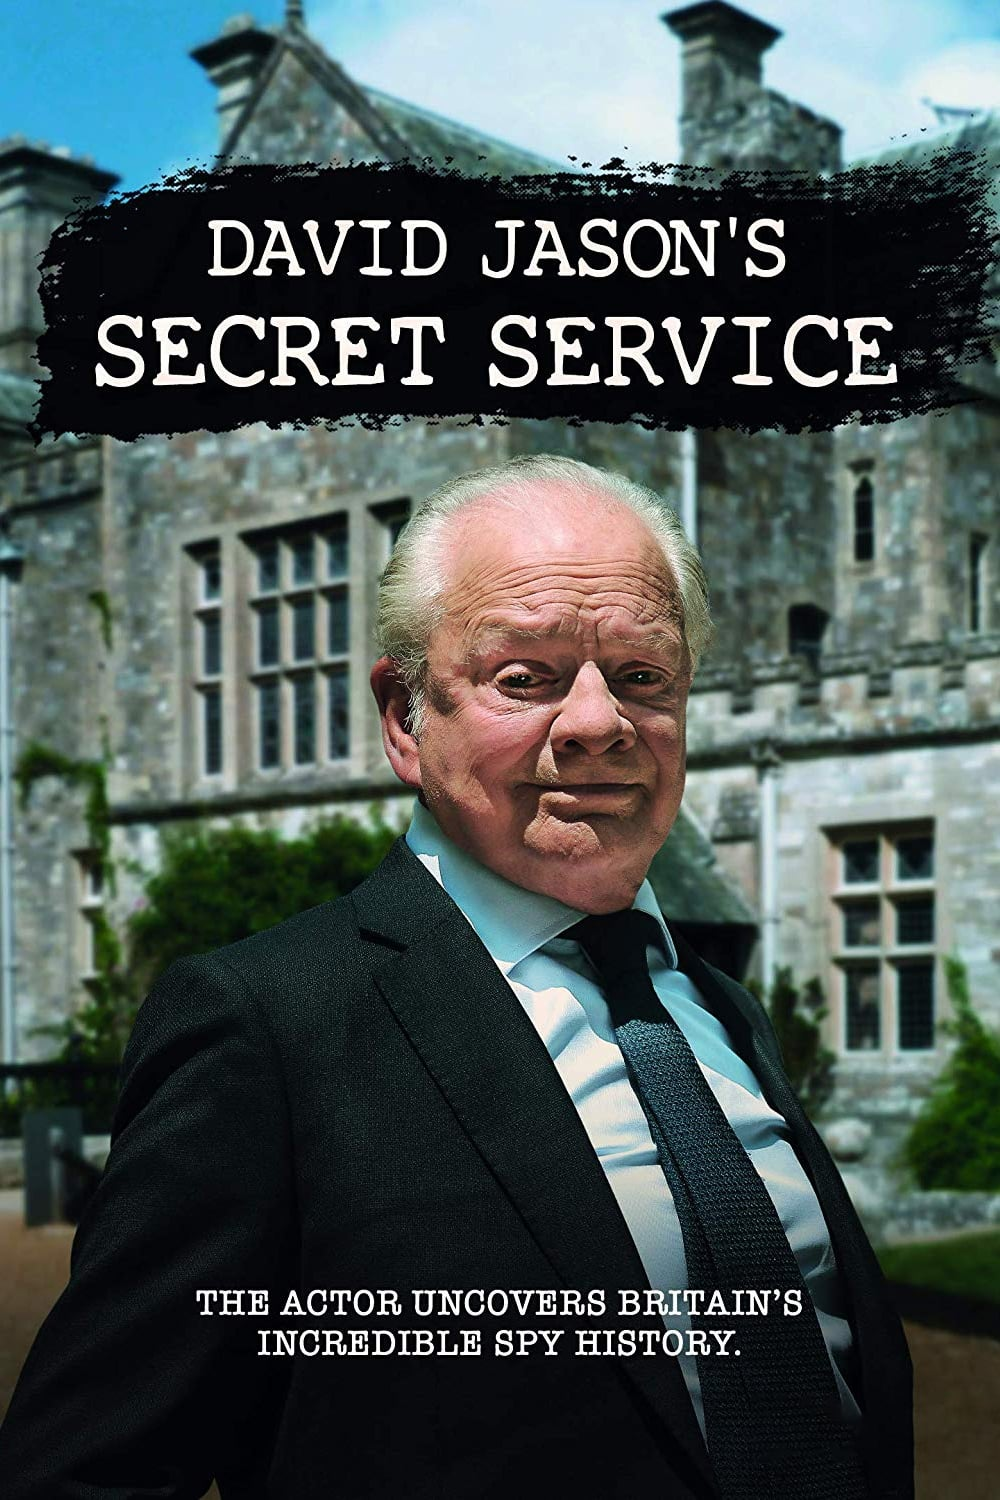 David Jason's Secret Service on FREECABLE TV